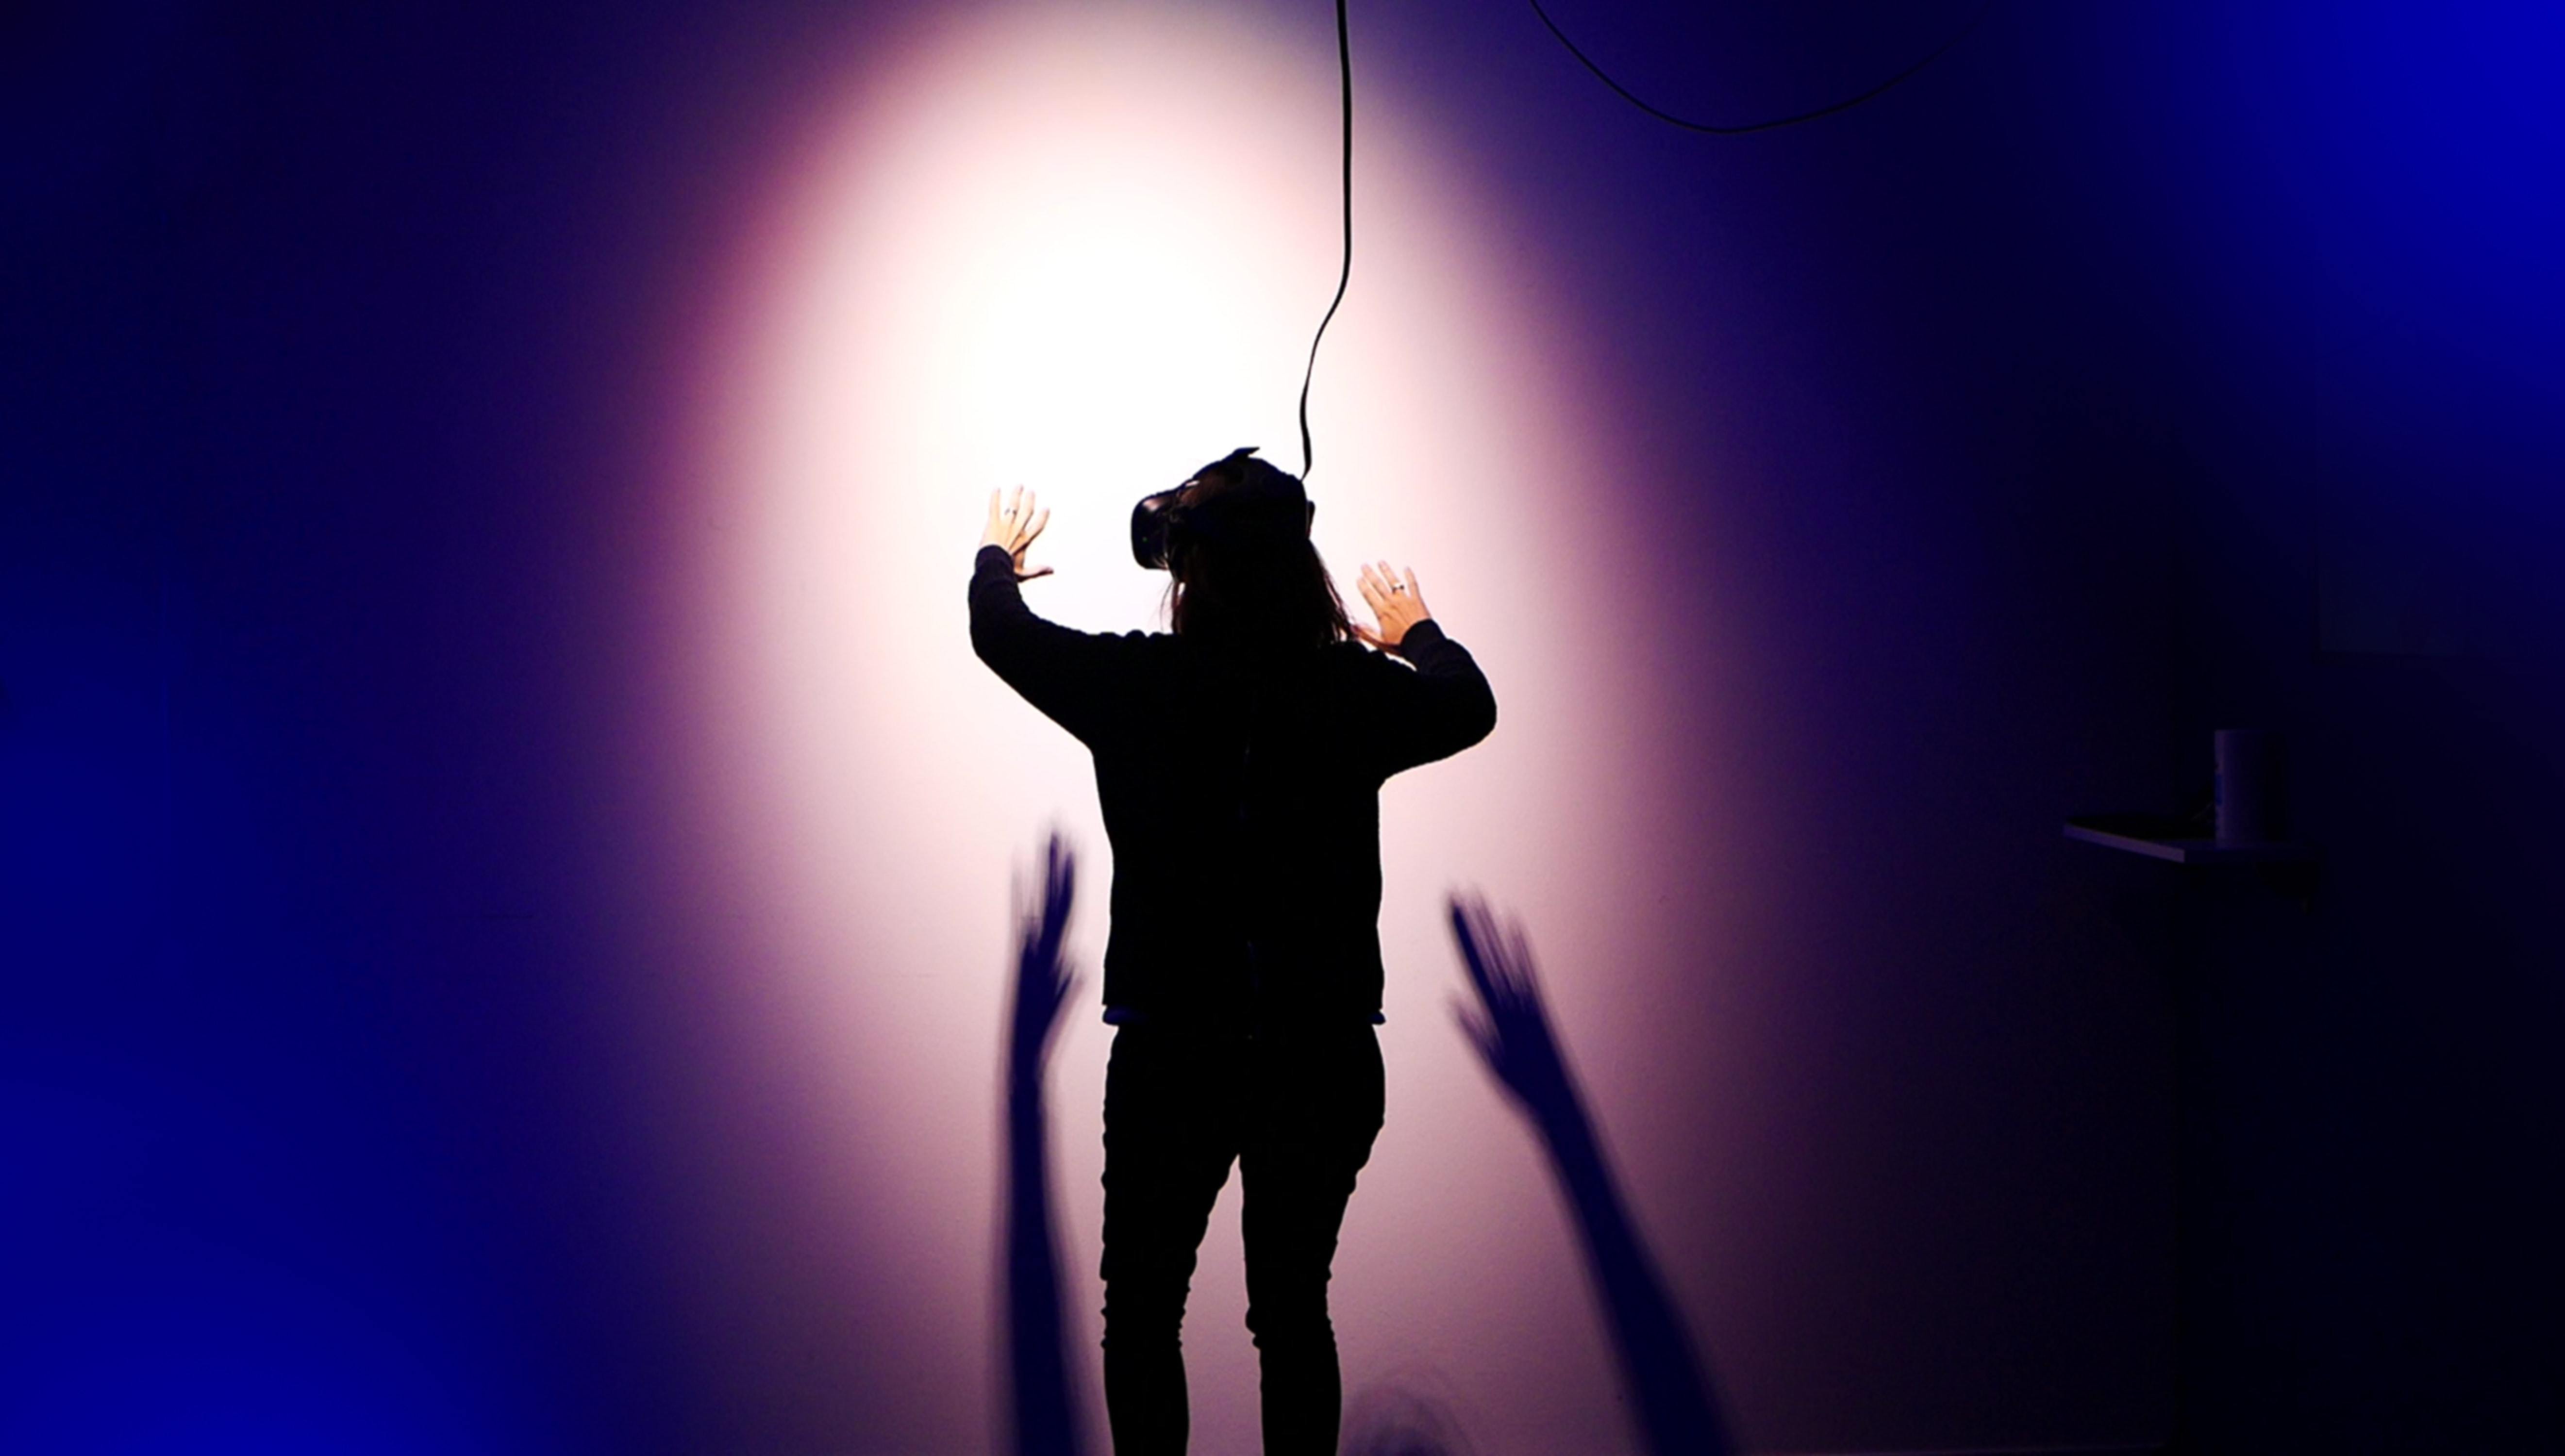 A photograph of a person experiencing a VR experience. They are wearing a VR headset, their hands are raised in front of them, casting a shadow. They are standing in front of a blurred purple and blue background as though on stage. They are facing away from the camera.